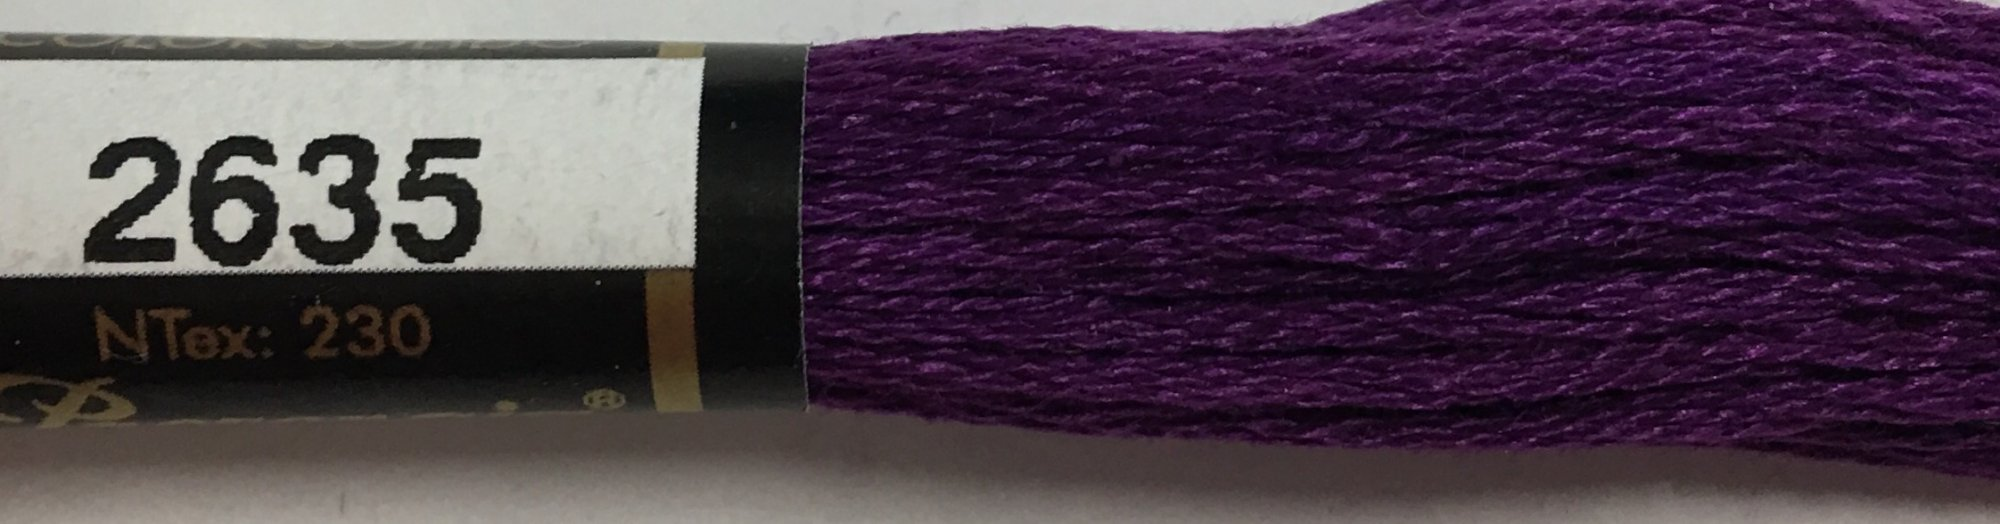 F2635 Presencia 100% Mercerized Finca Cotton 6 ply Embroidery Floss 8 meter skein